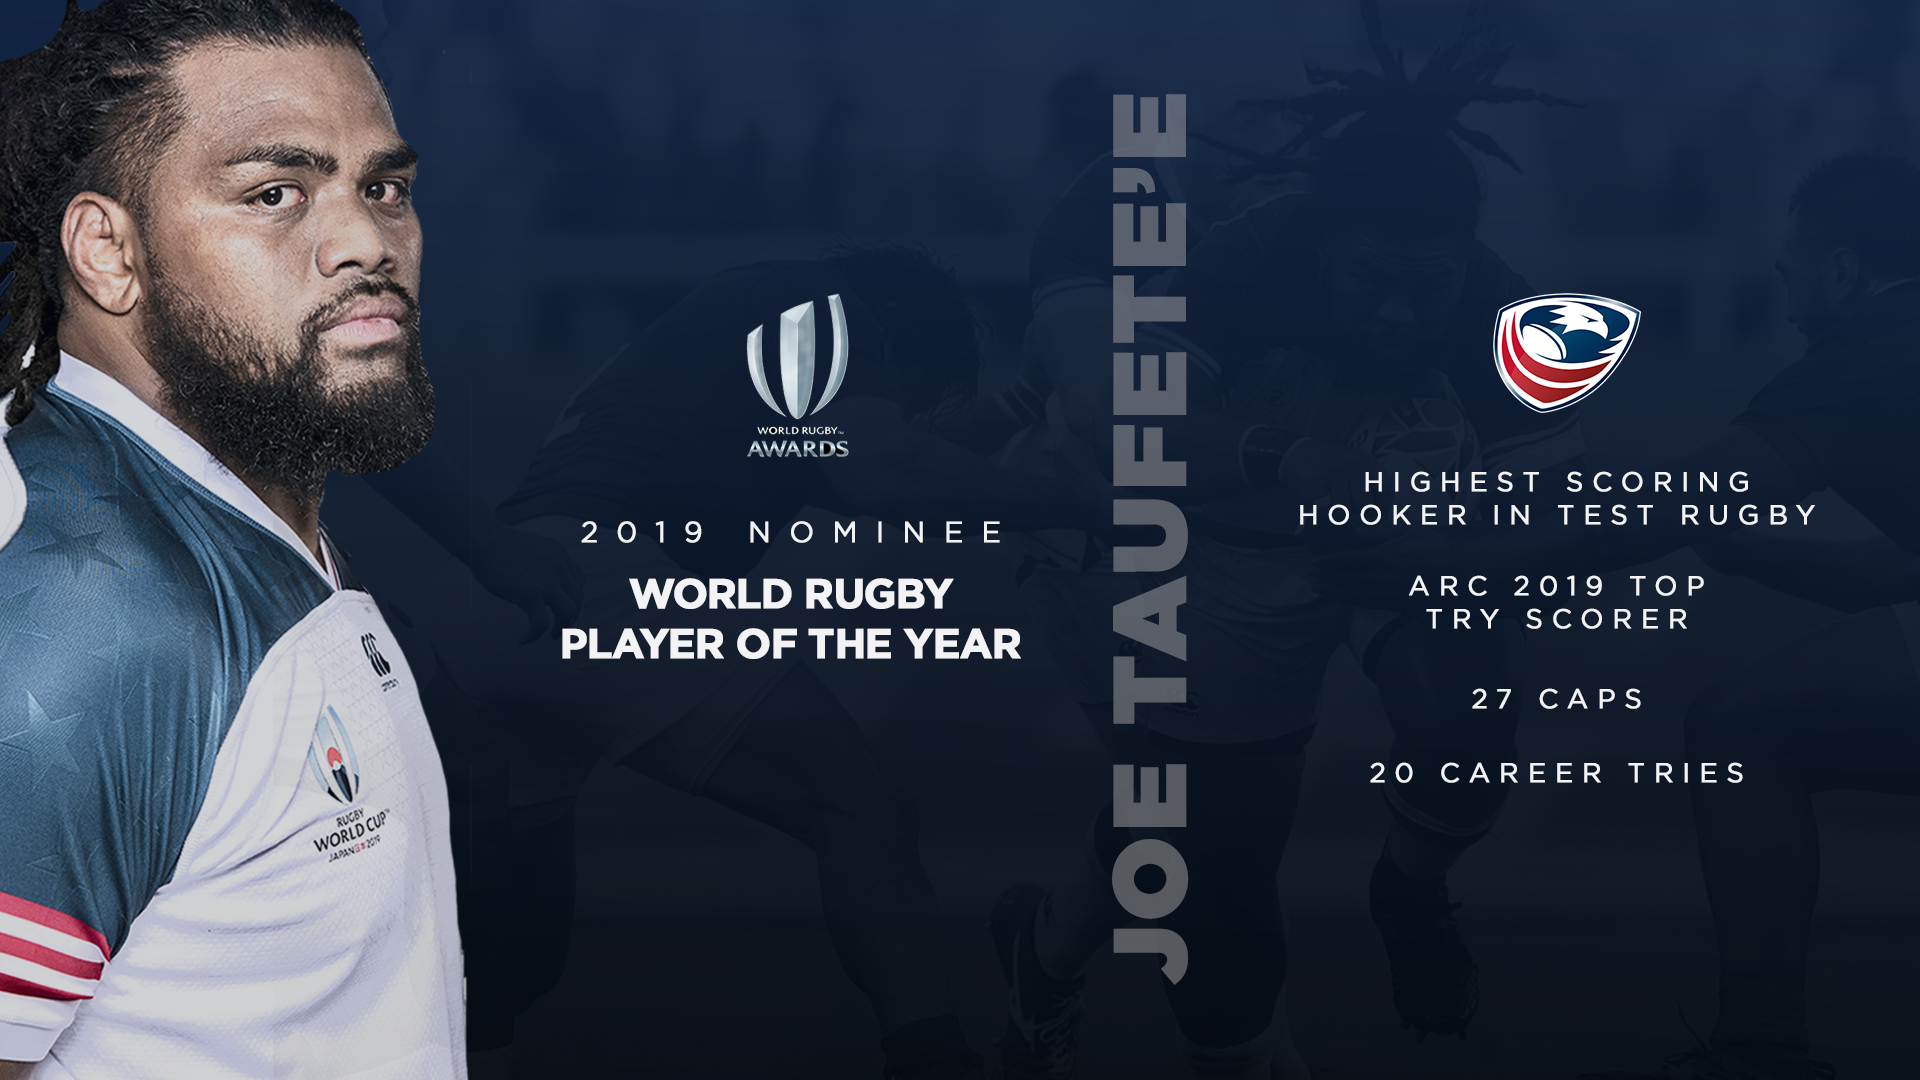 USA Eagle Joe Taufete'e nominated as World Rugby Men's Player of the Year